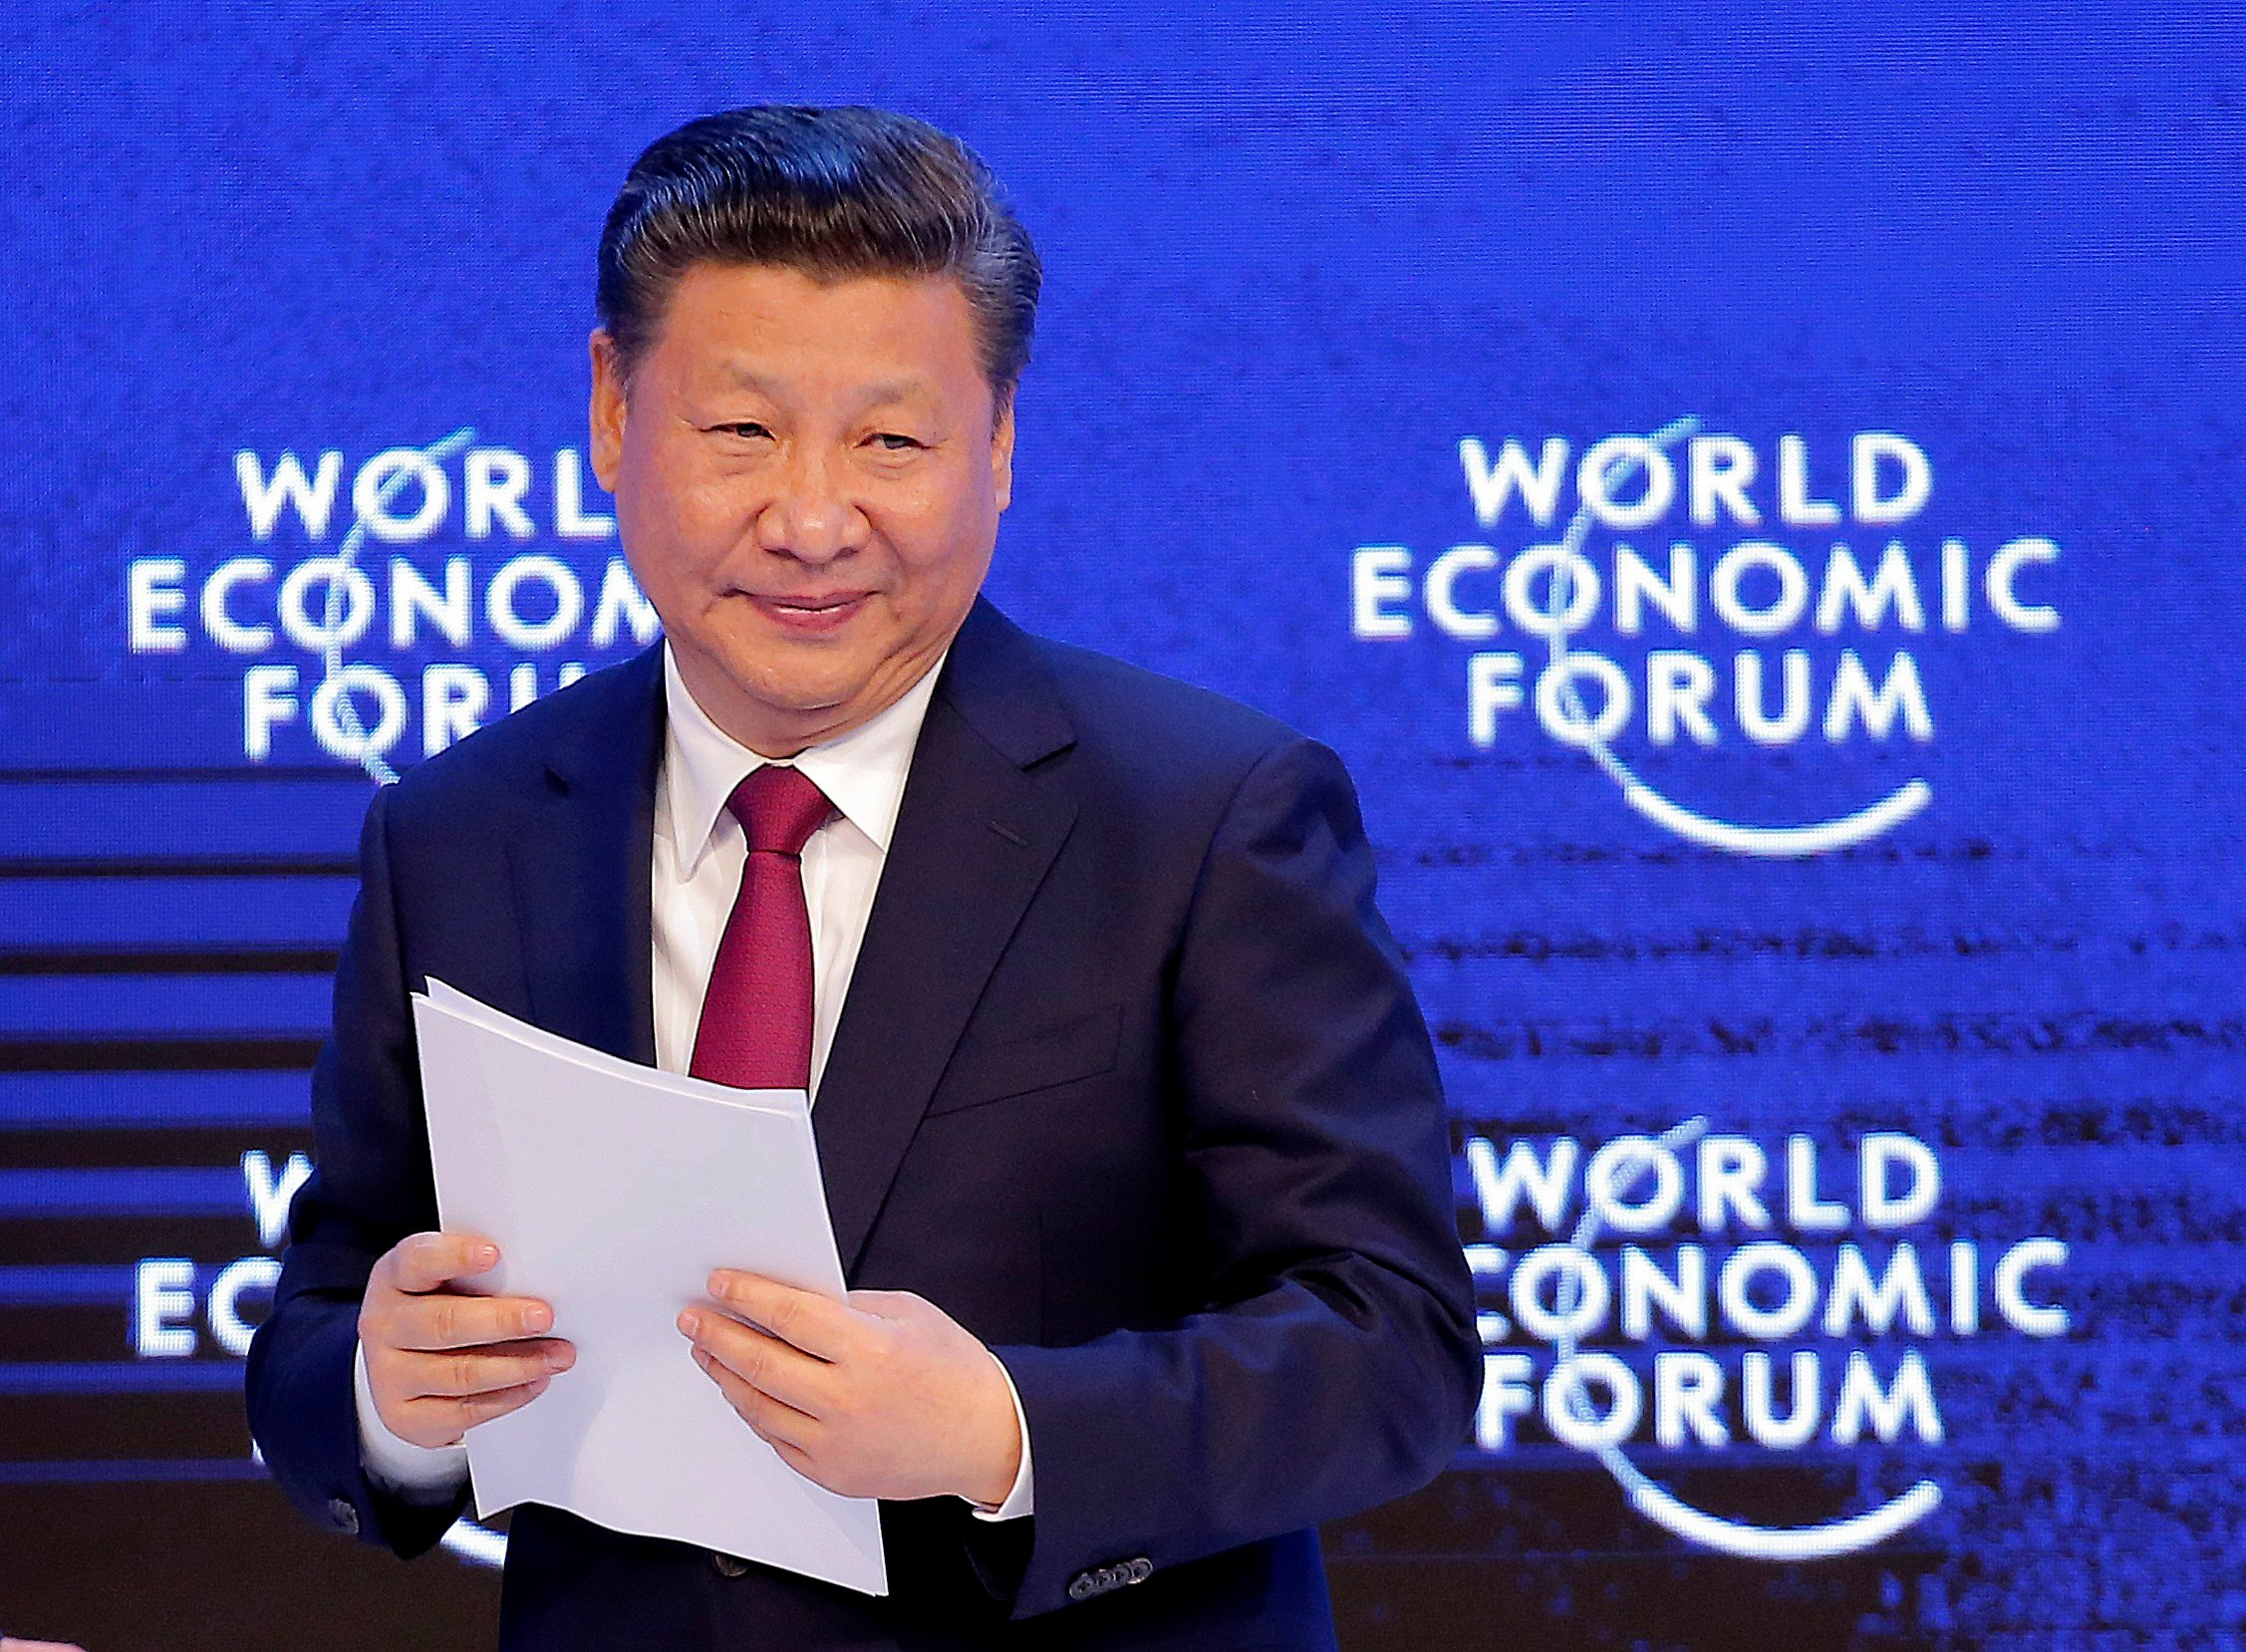 China's President Xi Jinping looks on at the World Economic Forum in Davos, Switzerland, Tuesday, Jan. 17, 2017. (AP Photo/Michel Euler)